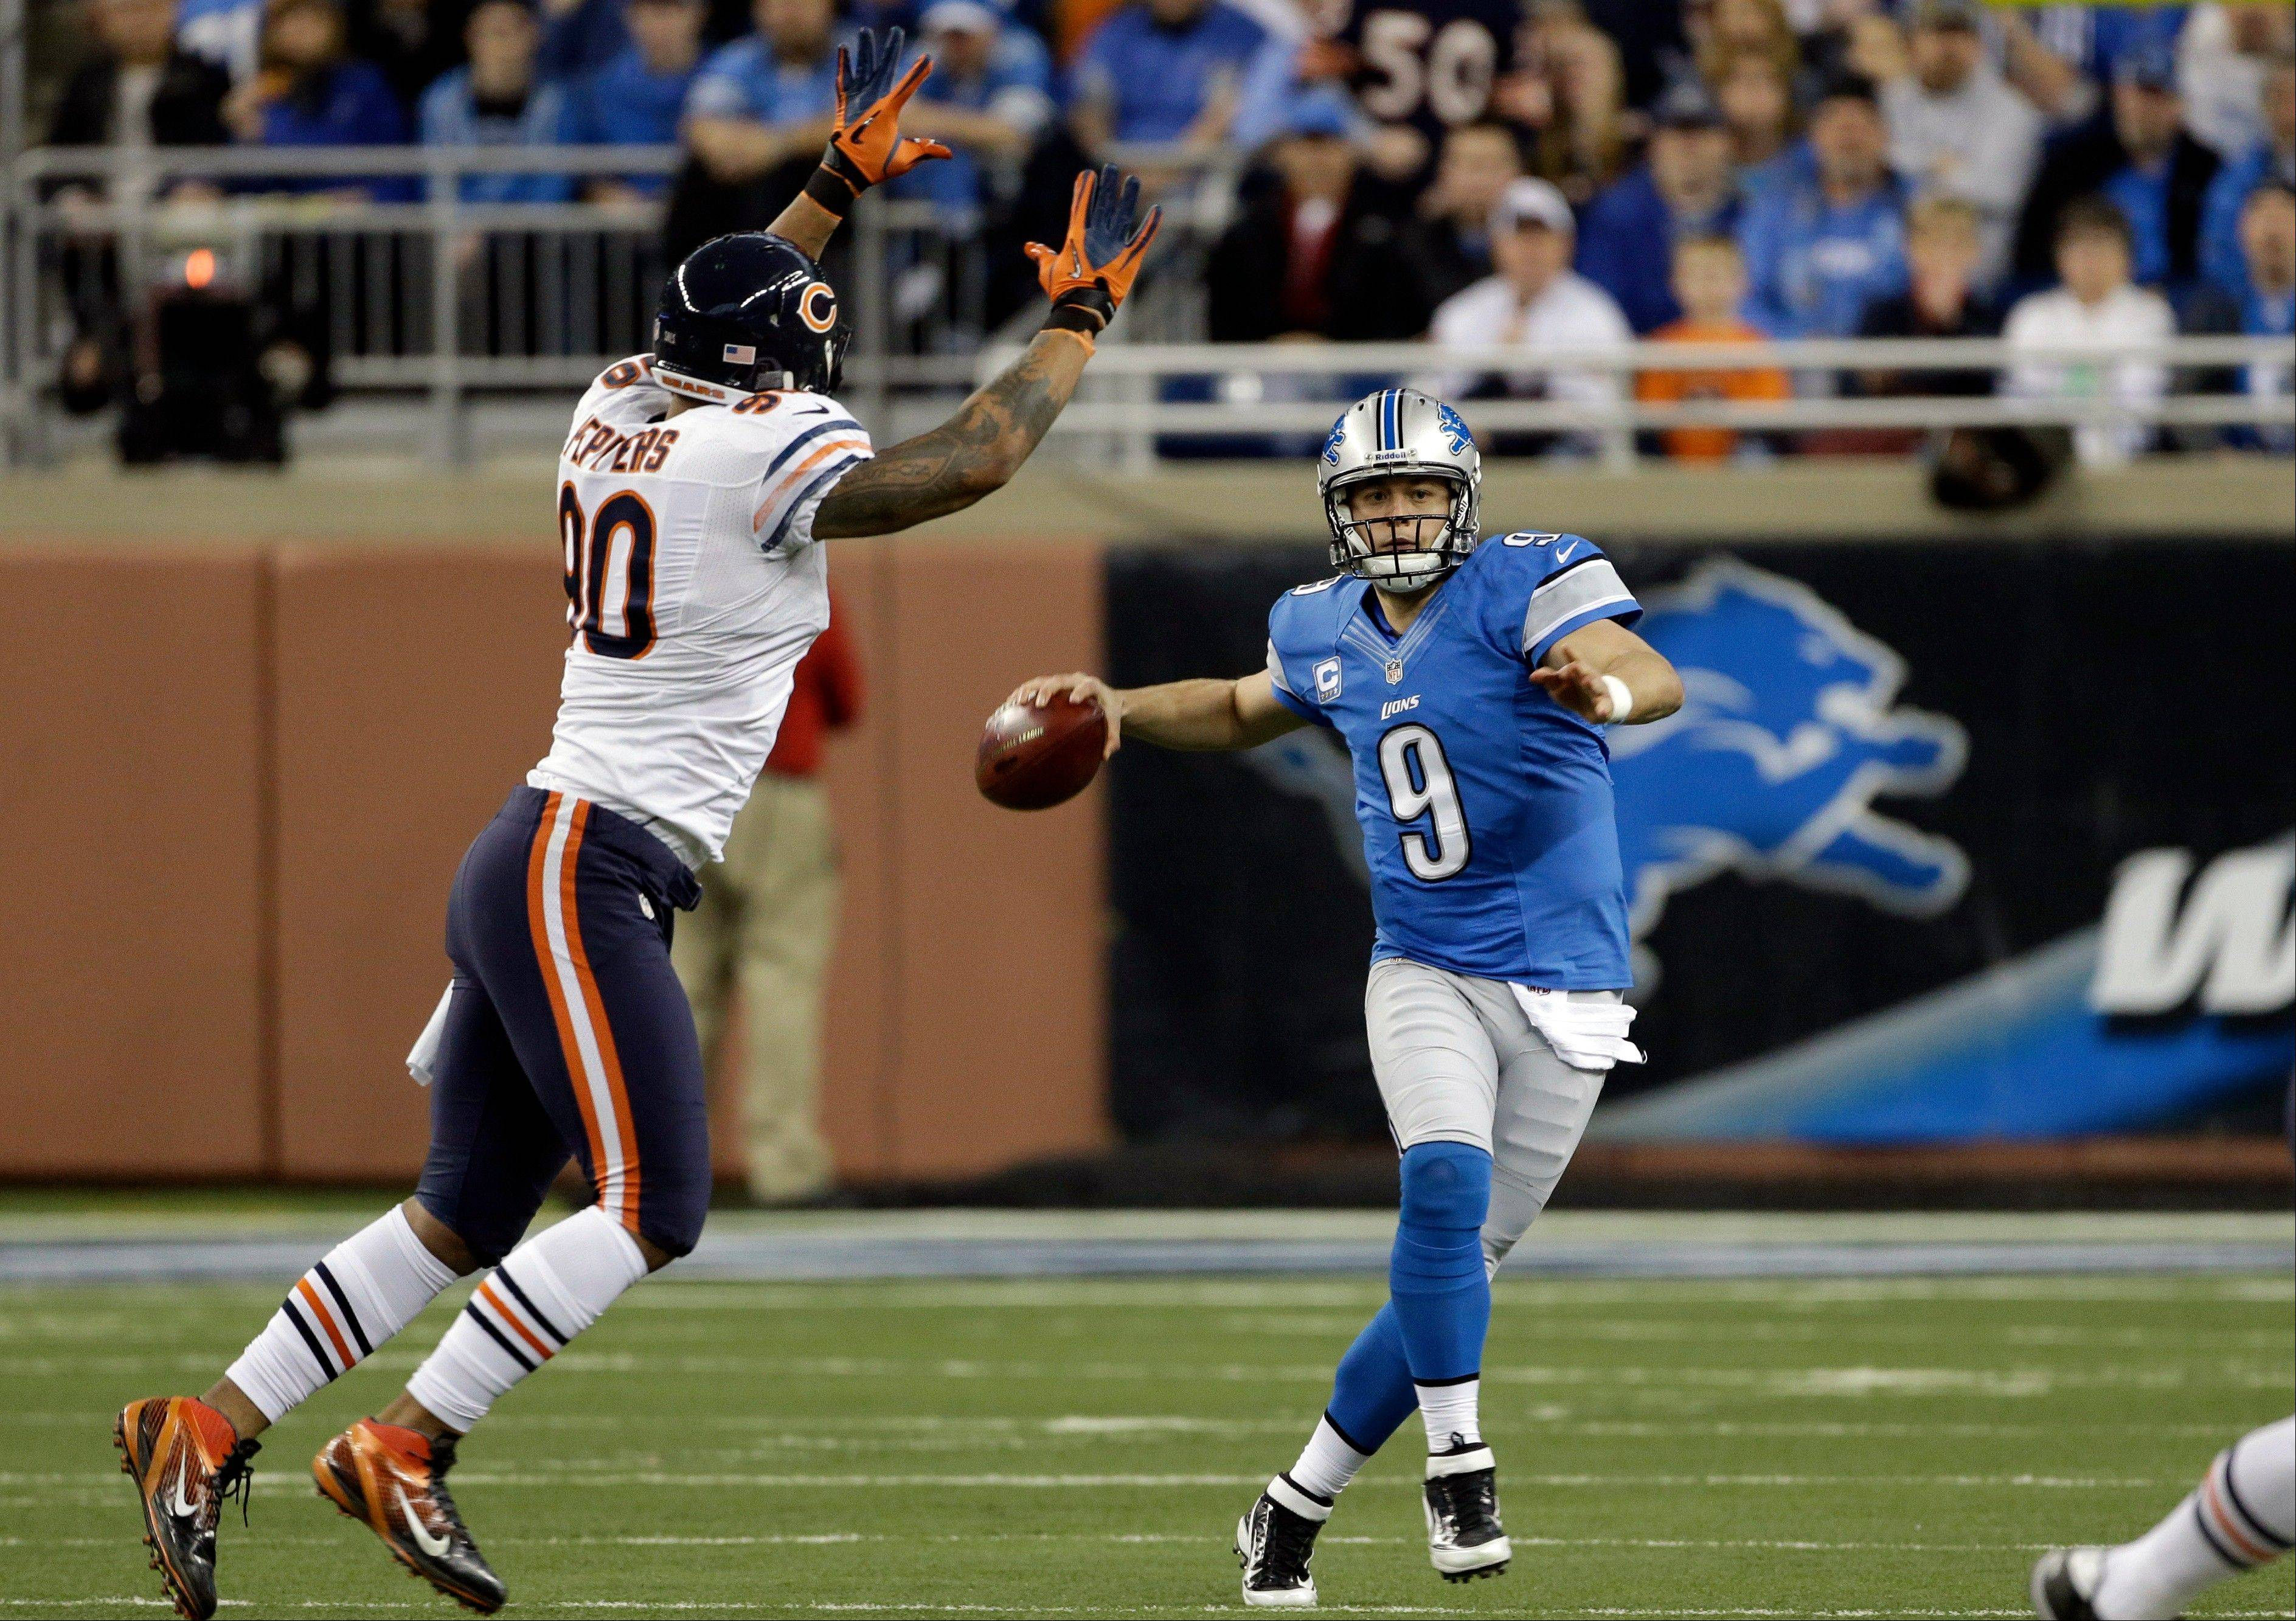 Detroit Lions quarterback Matthew Stafford (9) looks downfield while chased by Chicago Bears defensive end Julius Peppers (90) during the first quarter.